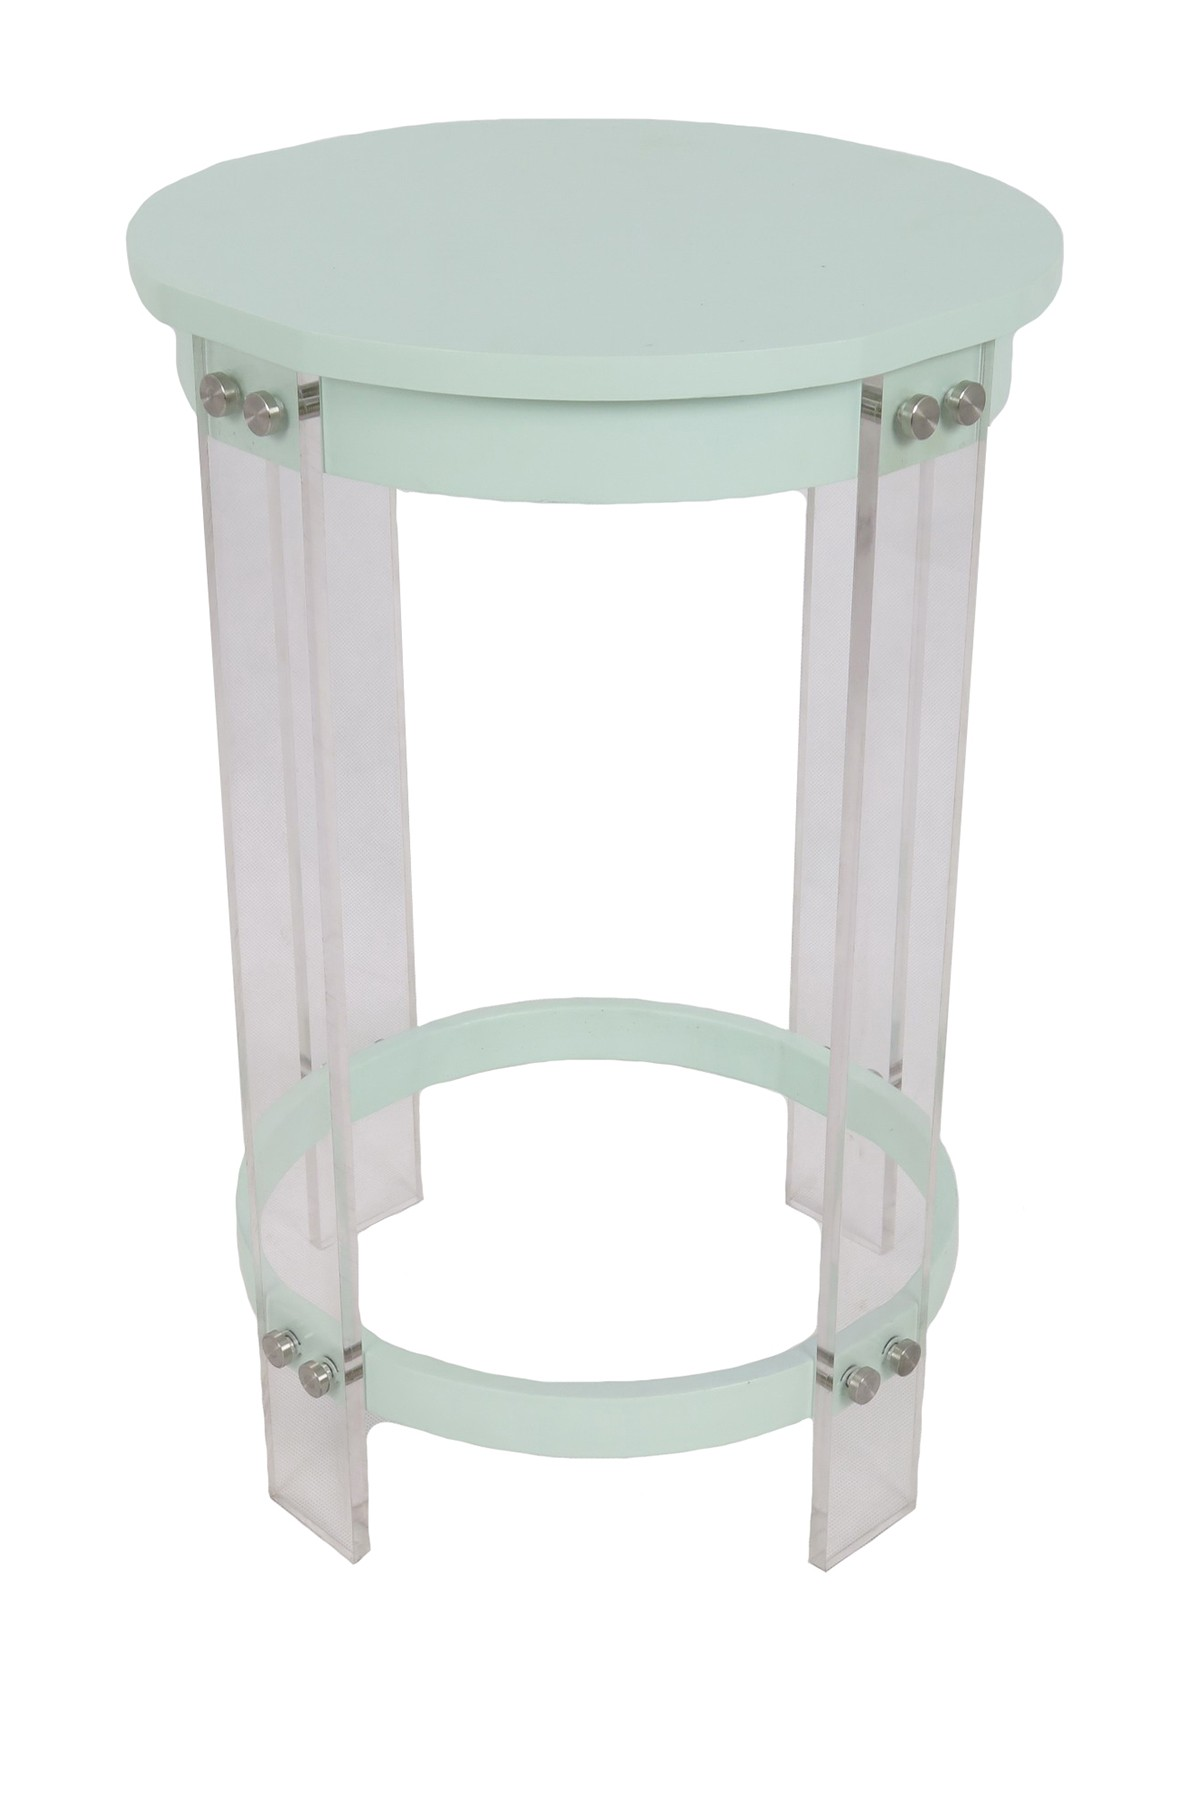 sagebrook home light blue acrylic mdf round accent table furniture wellington small patio mid century modern lamps dark wood nightstands garden chairs set colorful inch square